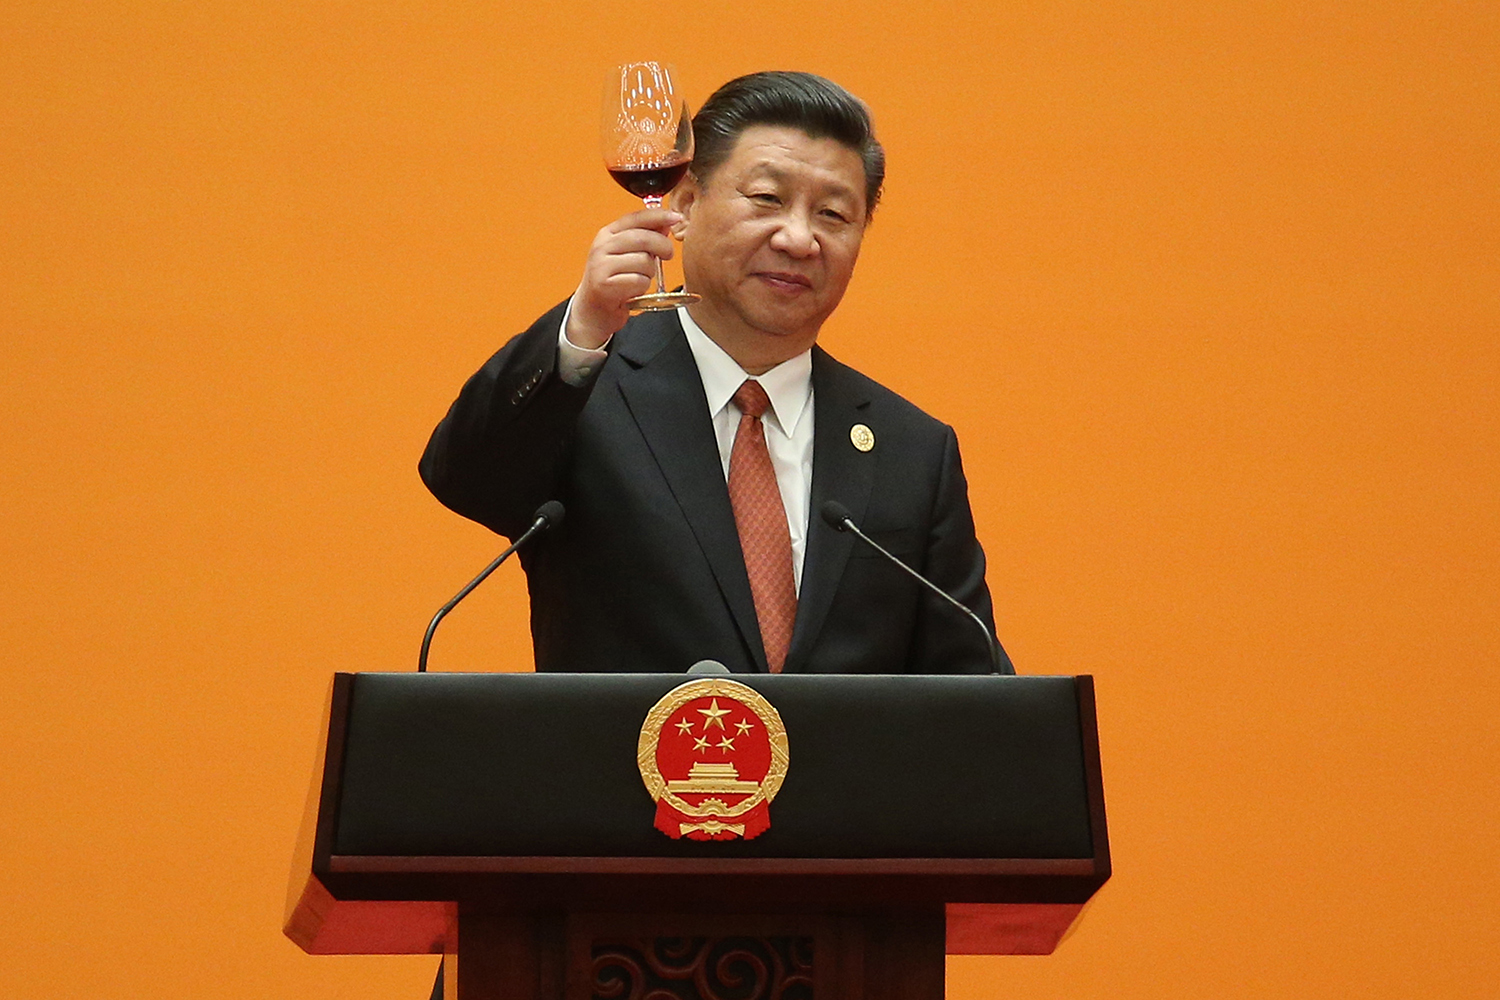 May 14, Xi Jinping makes a toast during a welcome banquet for the Belt and Road Forum (BARF) at the Great Hall of the People in Beijing. The Belt and Road Initiative, now in its 5th year, is one of Xi's signature programs. It seeks to dramatically expand Chinese trade, infrastructure, and economic influence in neighboring countries and around the world.  (Wu Hong-Pool/Getty Images)